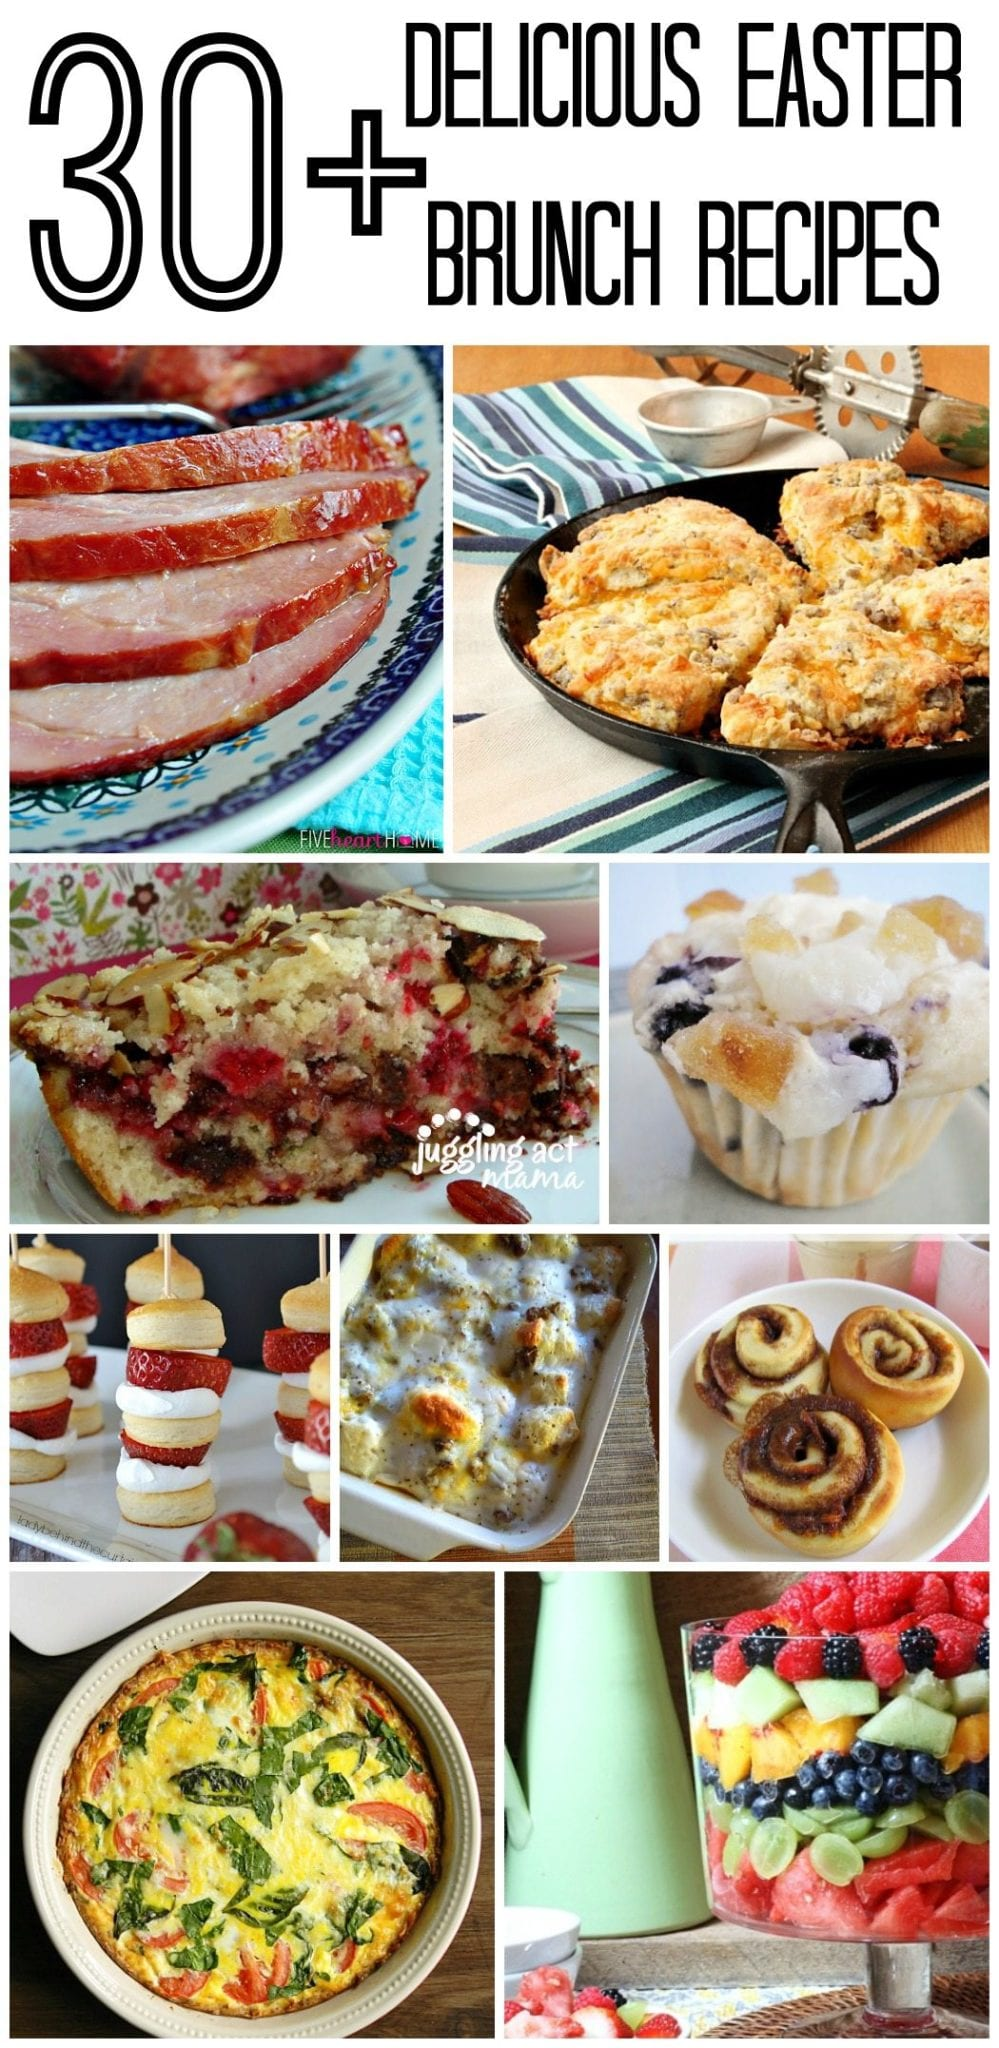 30+ Delicious Easter Brunch Recipes via Juggling Act Mama